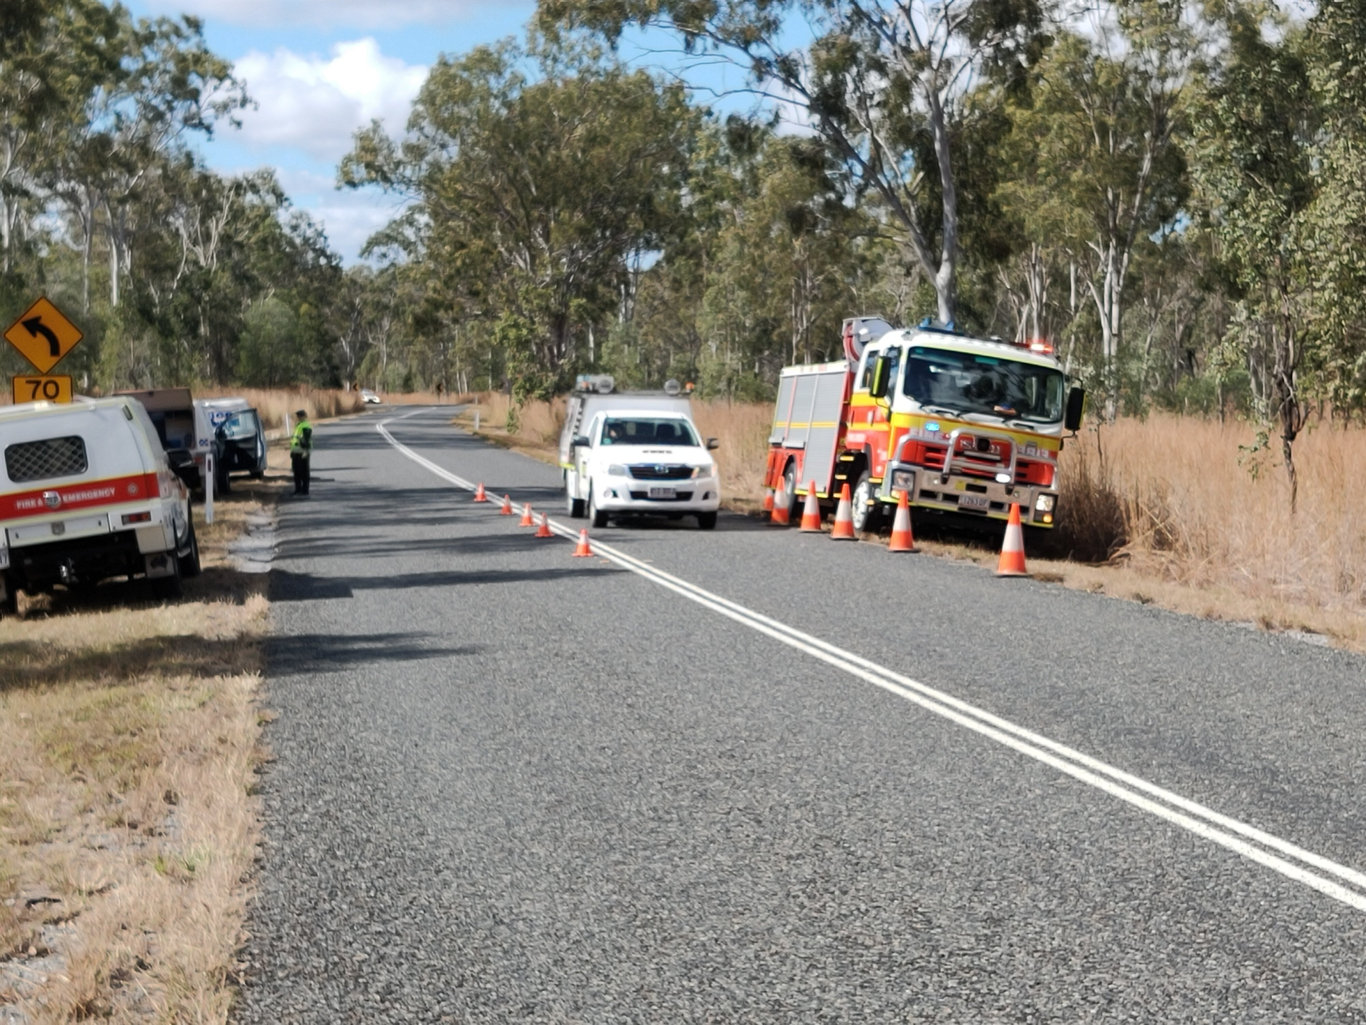 The scene of a double fatality on the Calliope Monto Road this morning. Picture: Rodney Stevens